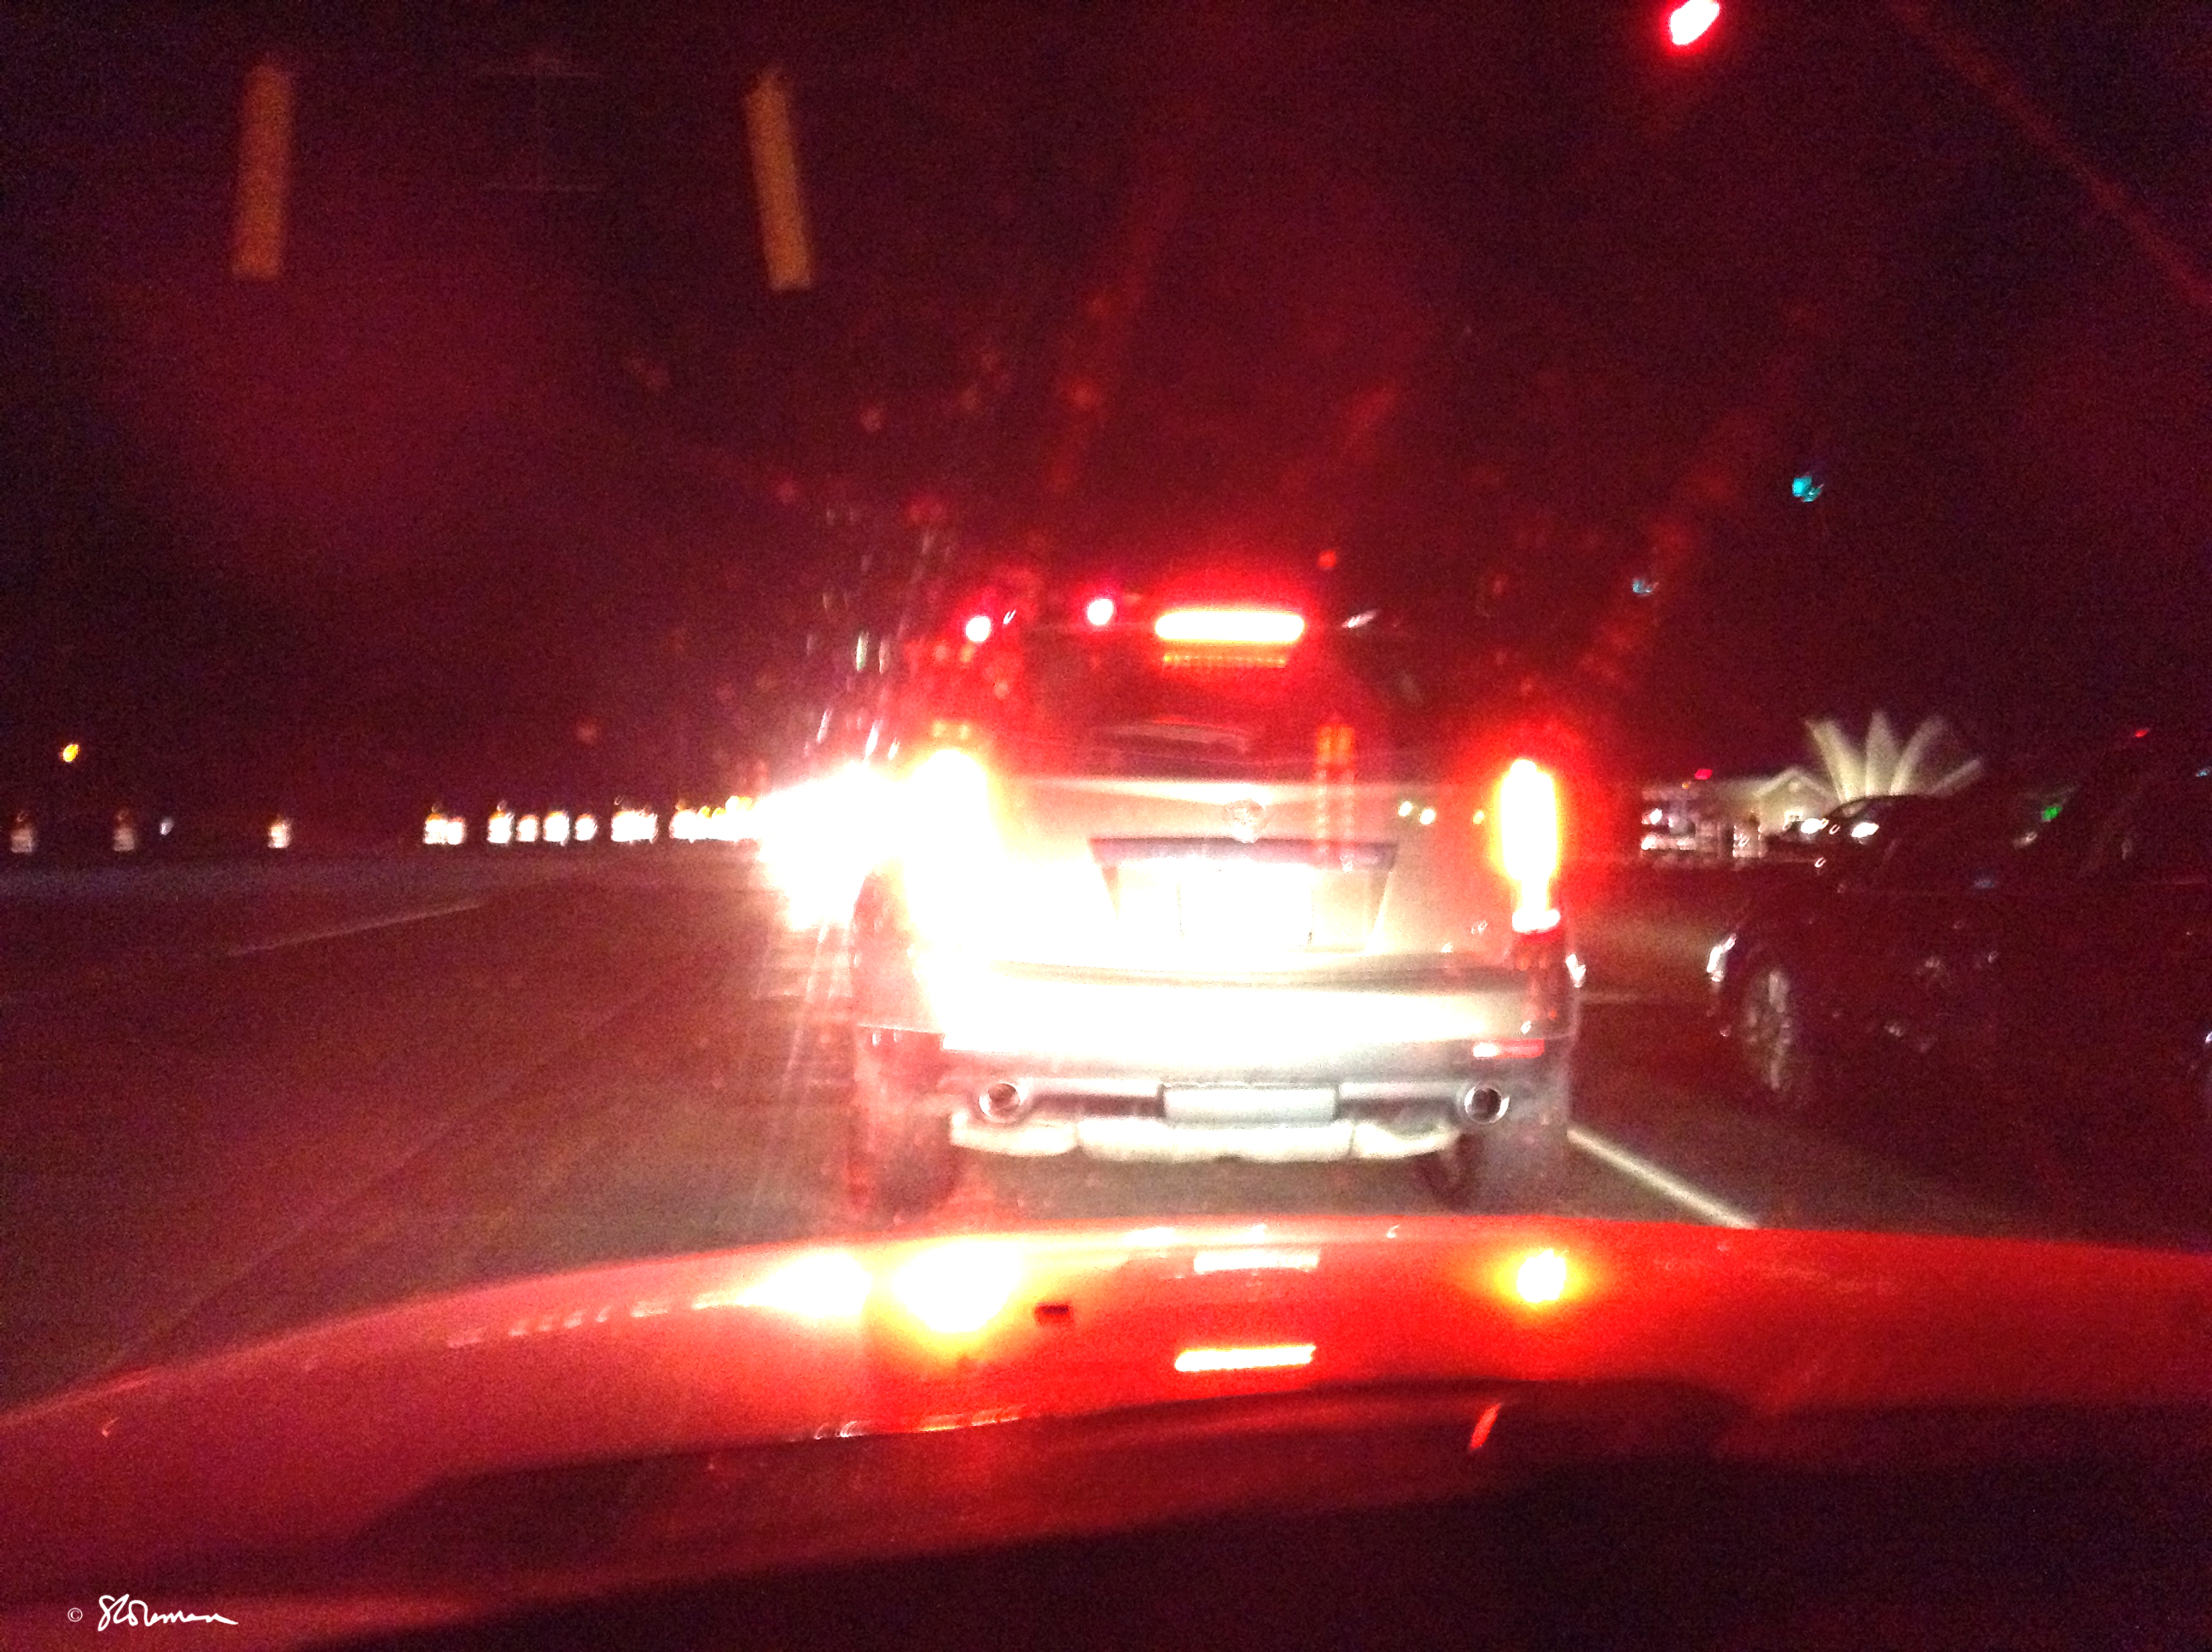 LED Lights: Dangerous on Roadways and Off – The Slice Iconic